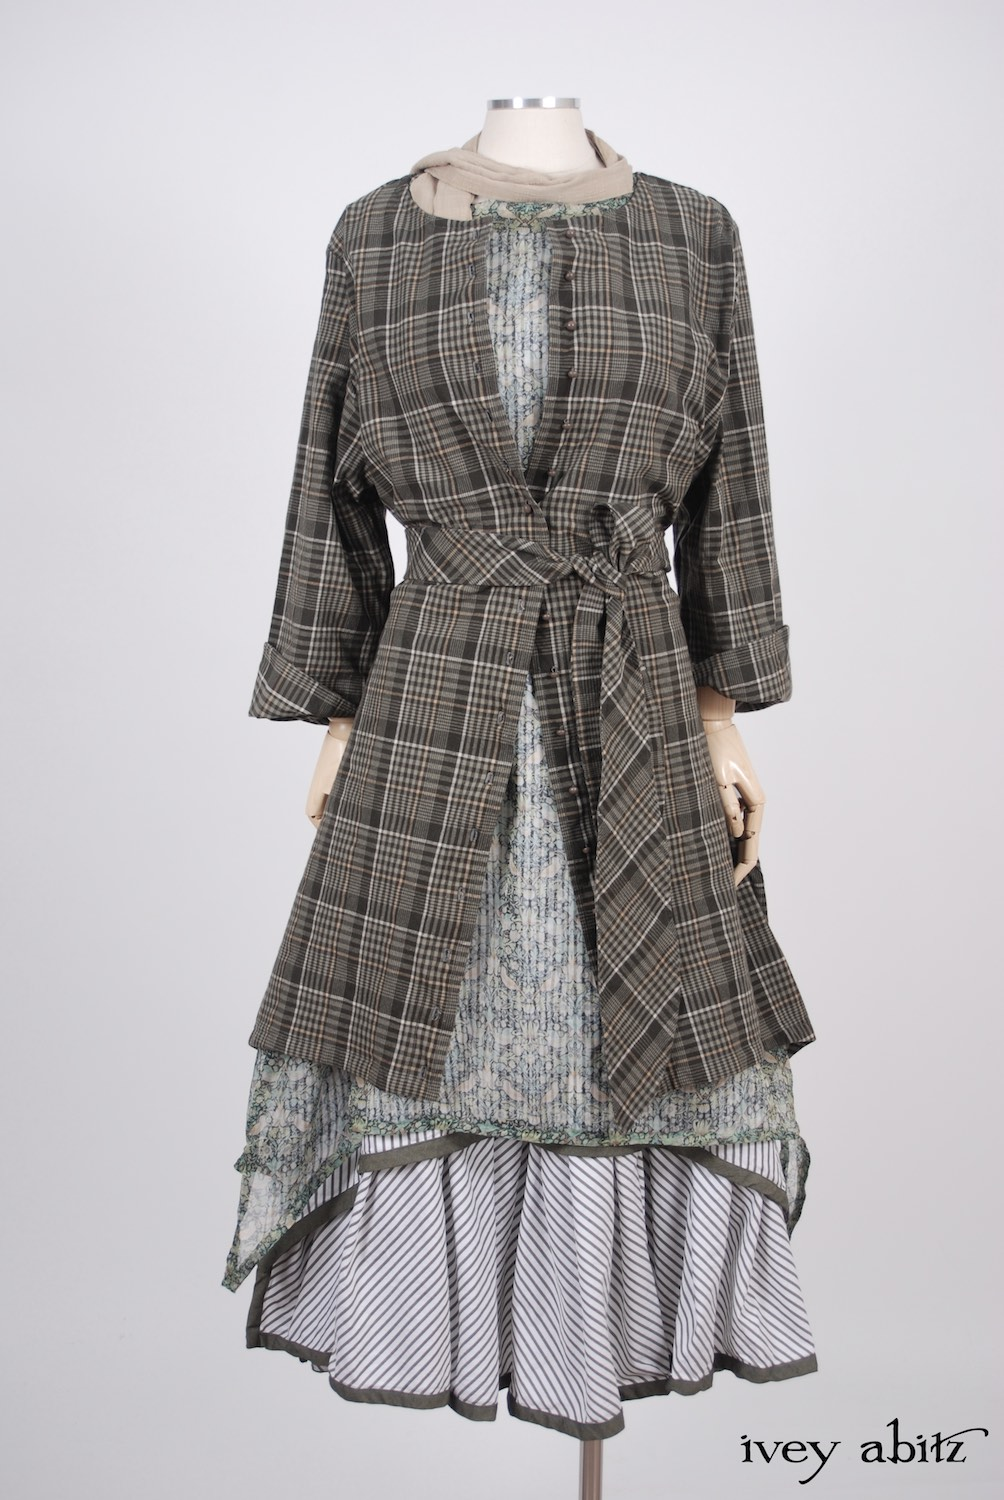 Ivey Abitz - Wildefield Duster Coat in Meadow Stretchy Plaid Cotton, High Water Length - Wildefield Frock in Bird and Vine Silk Organza  - Limited Edition Striped Blanchefleur Frock in Morning Meadow Striped Cotton, High Water Length  - Blanchefleur Sash in Blushed Plaid Voile